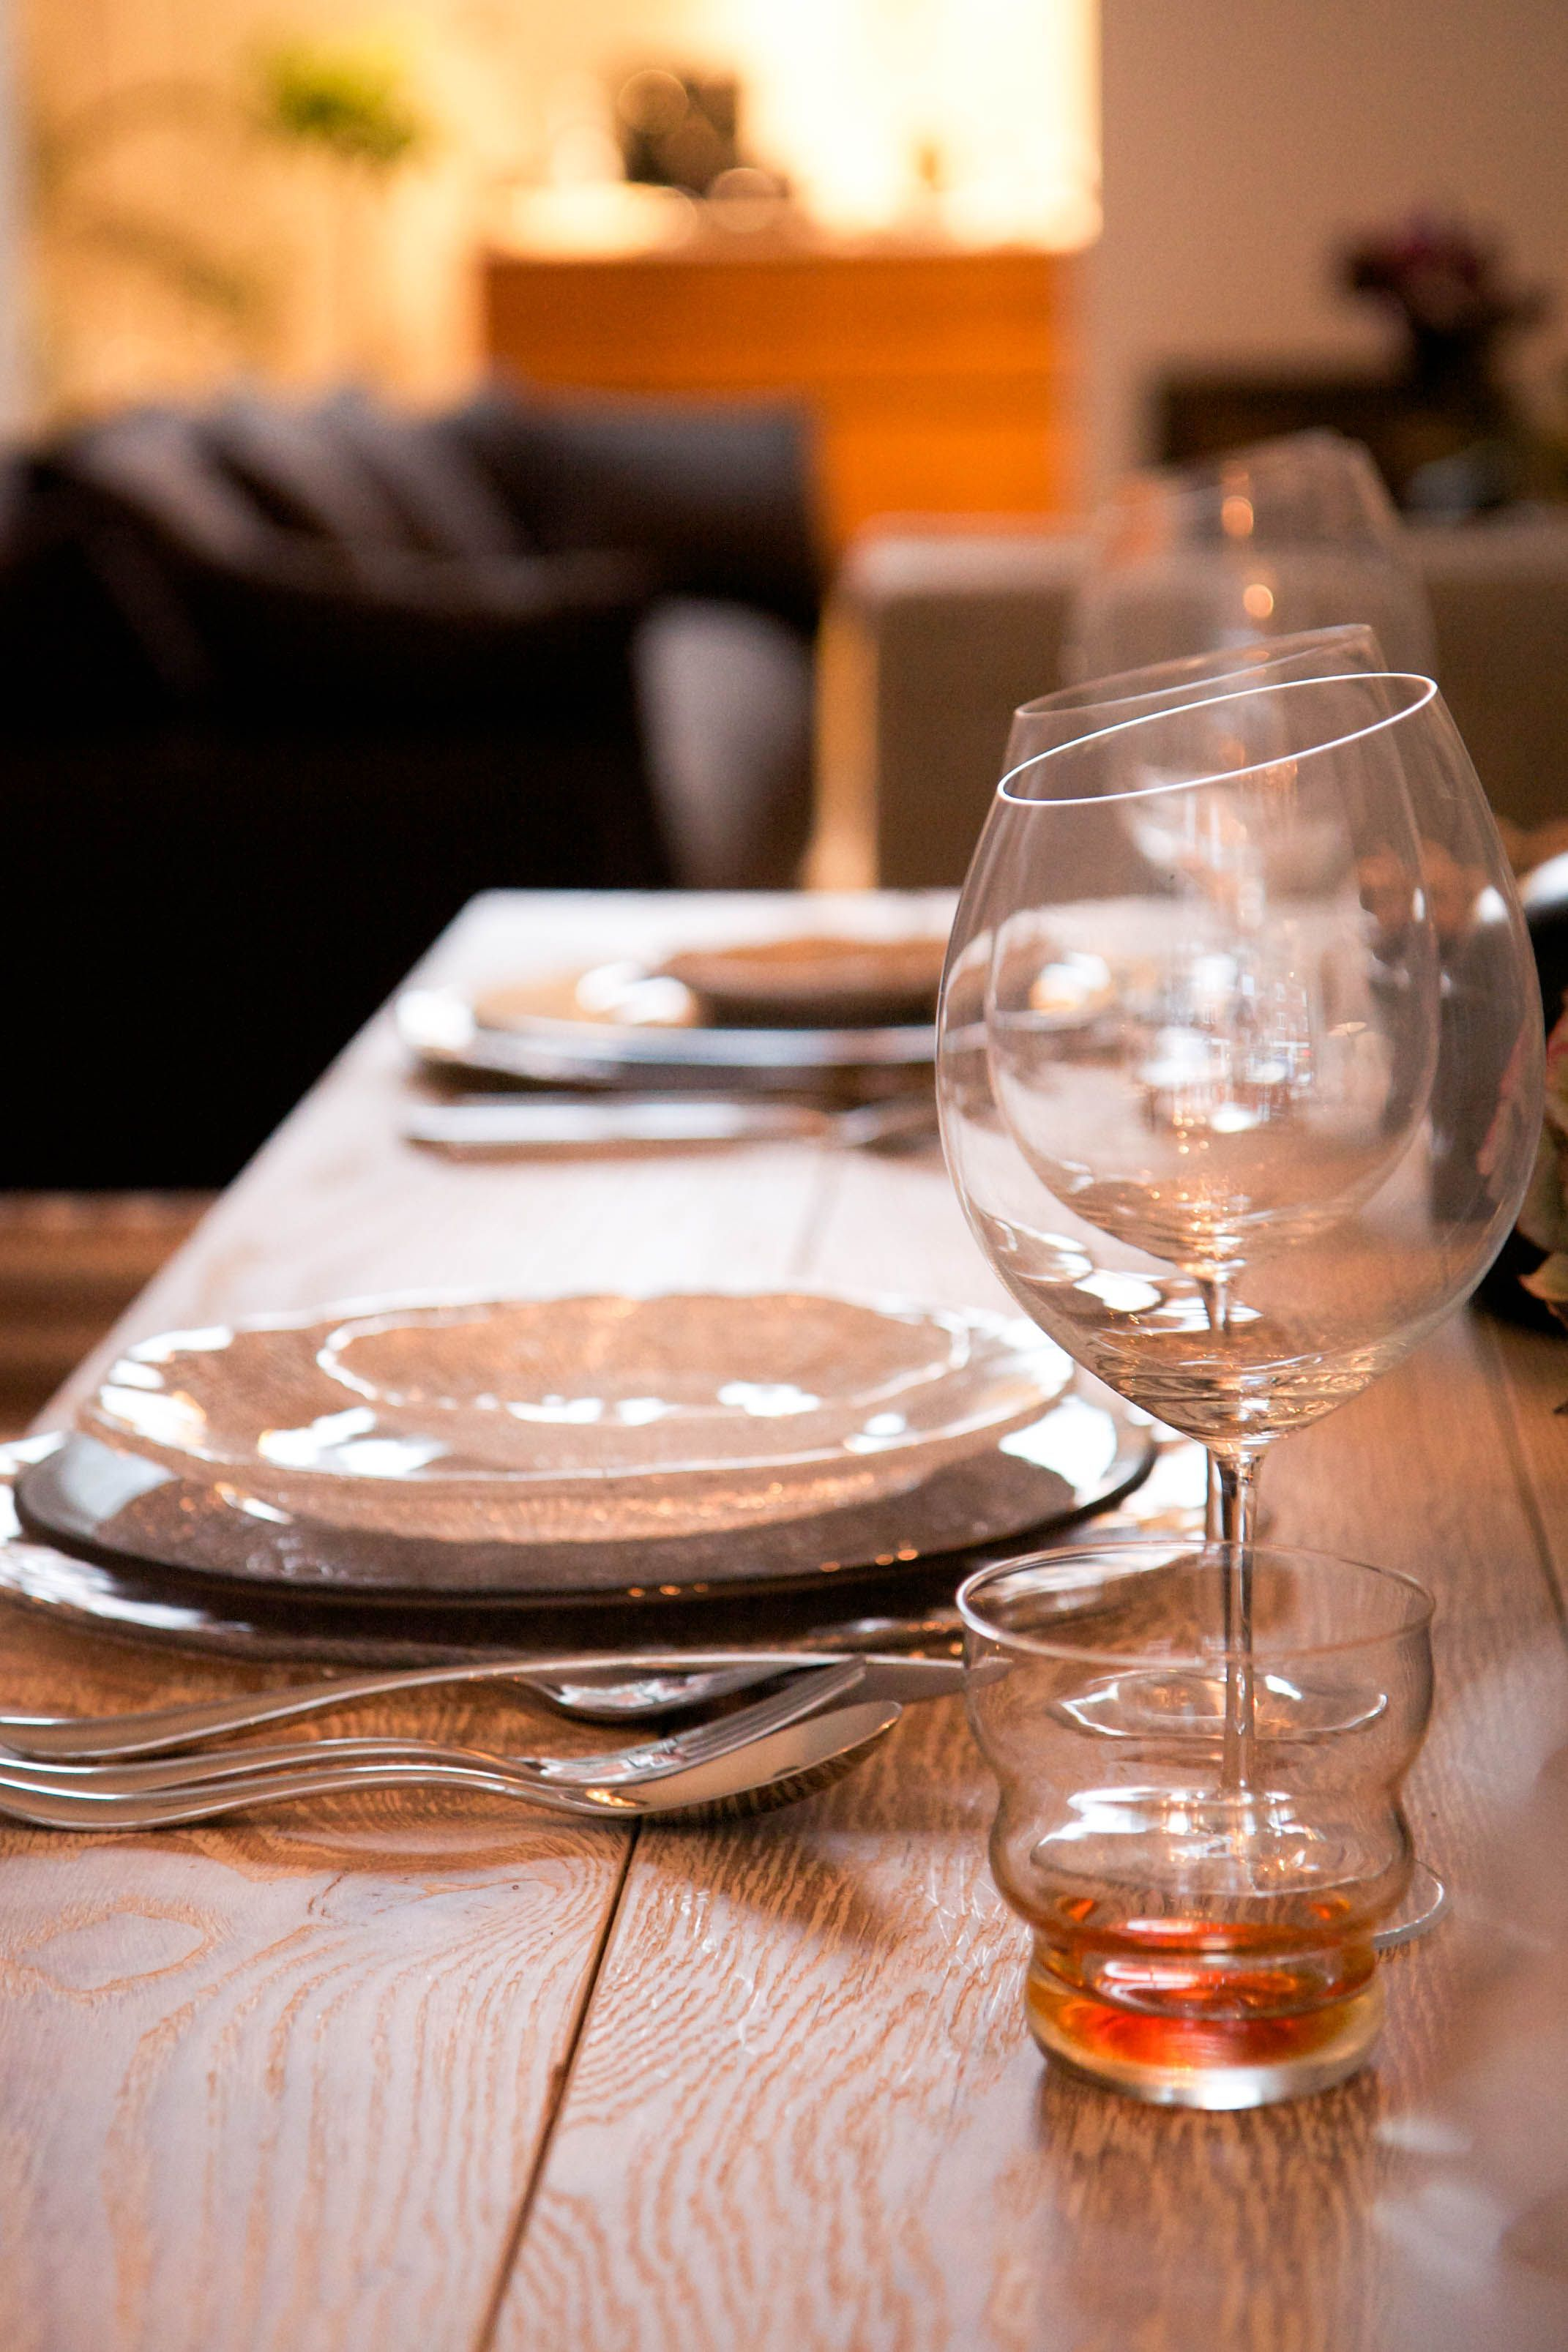 A dinner table with multiple glass plates and wine glasses.